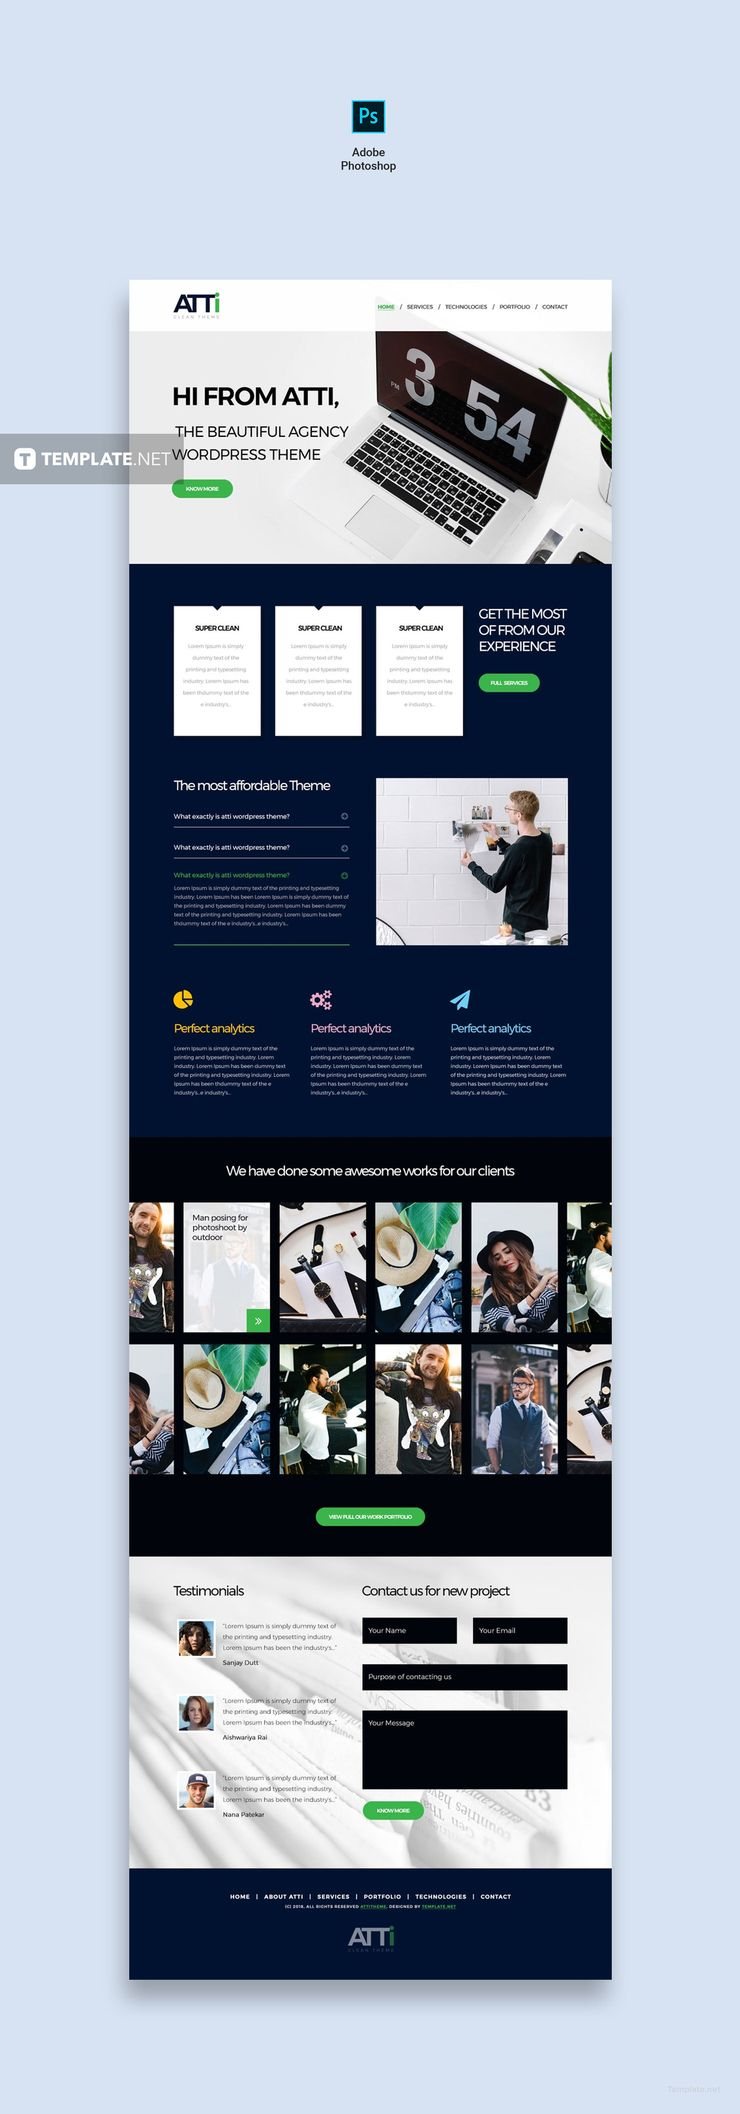 Free Corporate Agency HTML5/CSS3 Website Template Web